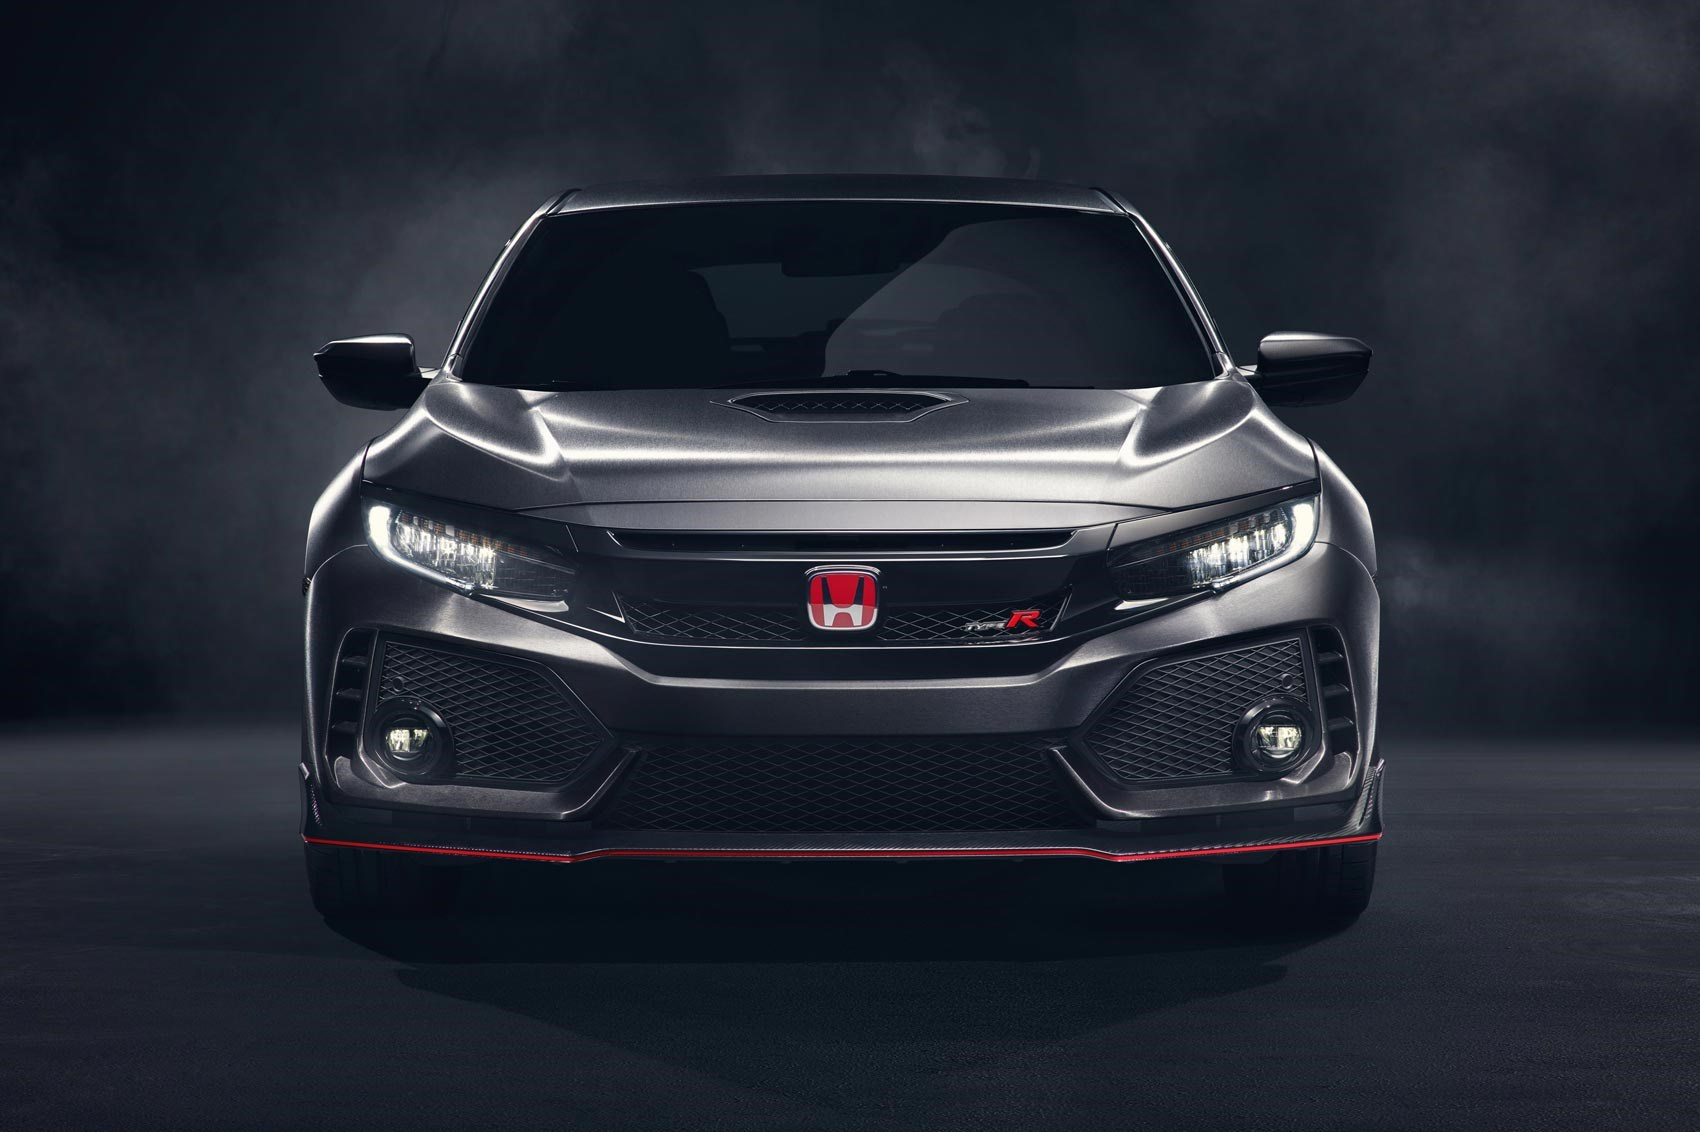 Honda previews 2017 Civic Type R in Paris by CAR Magazine